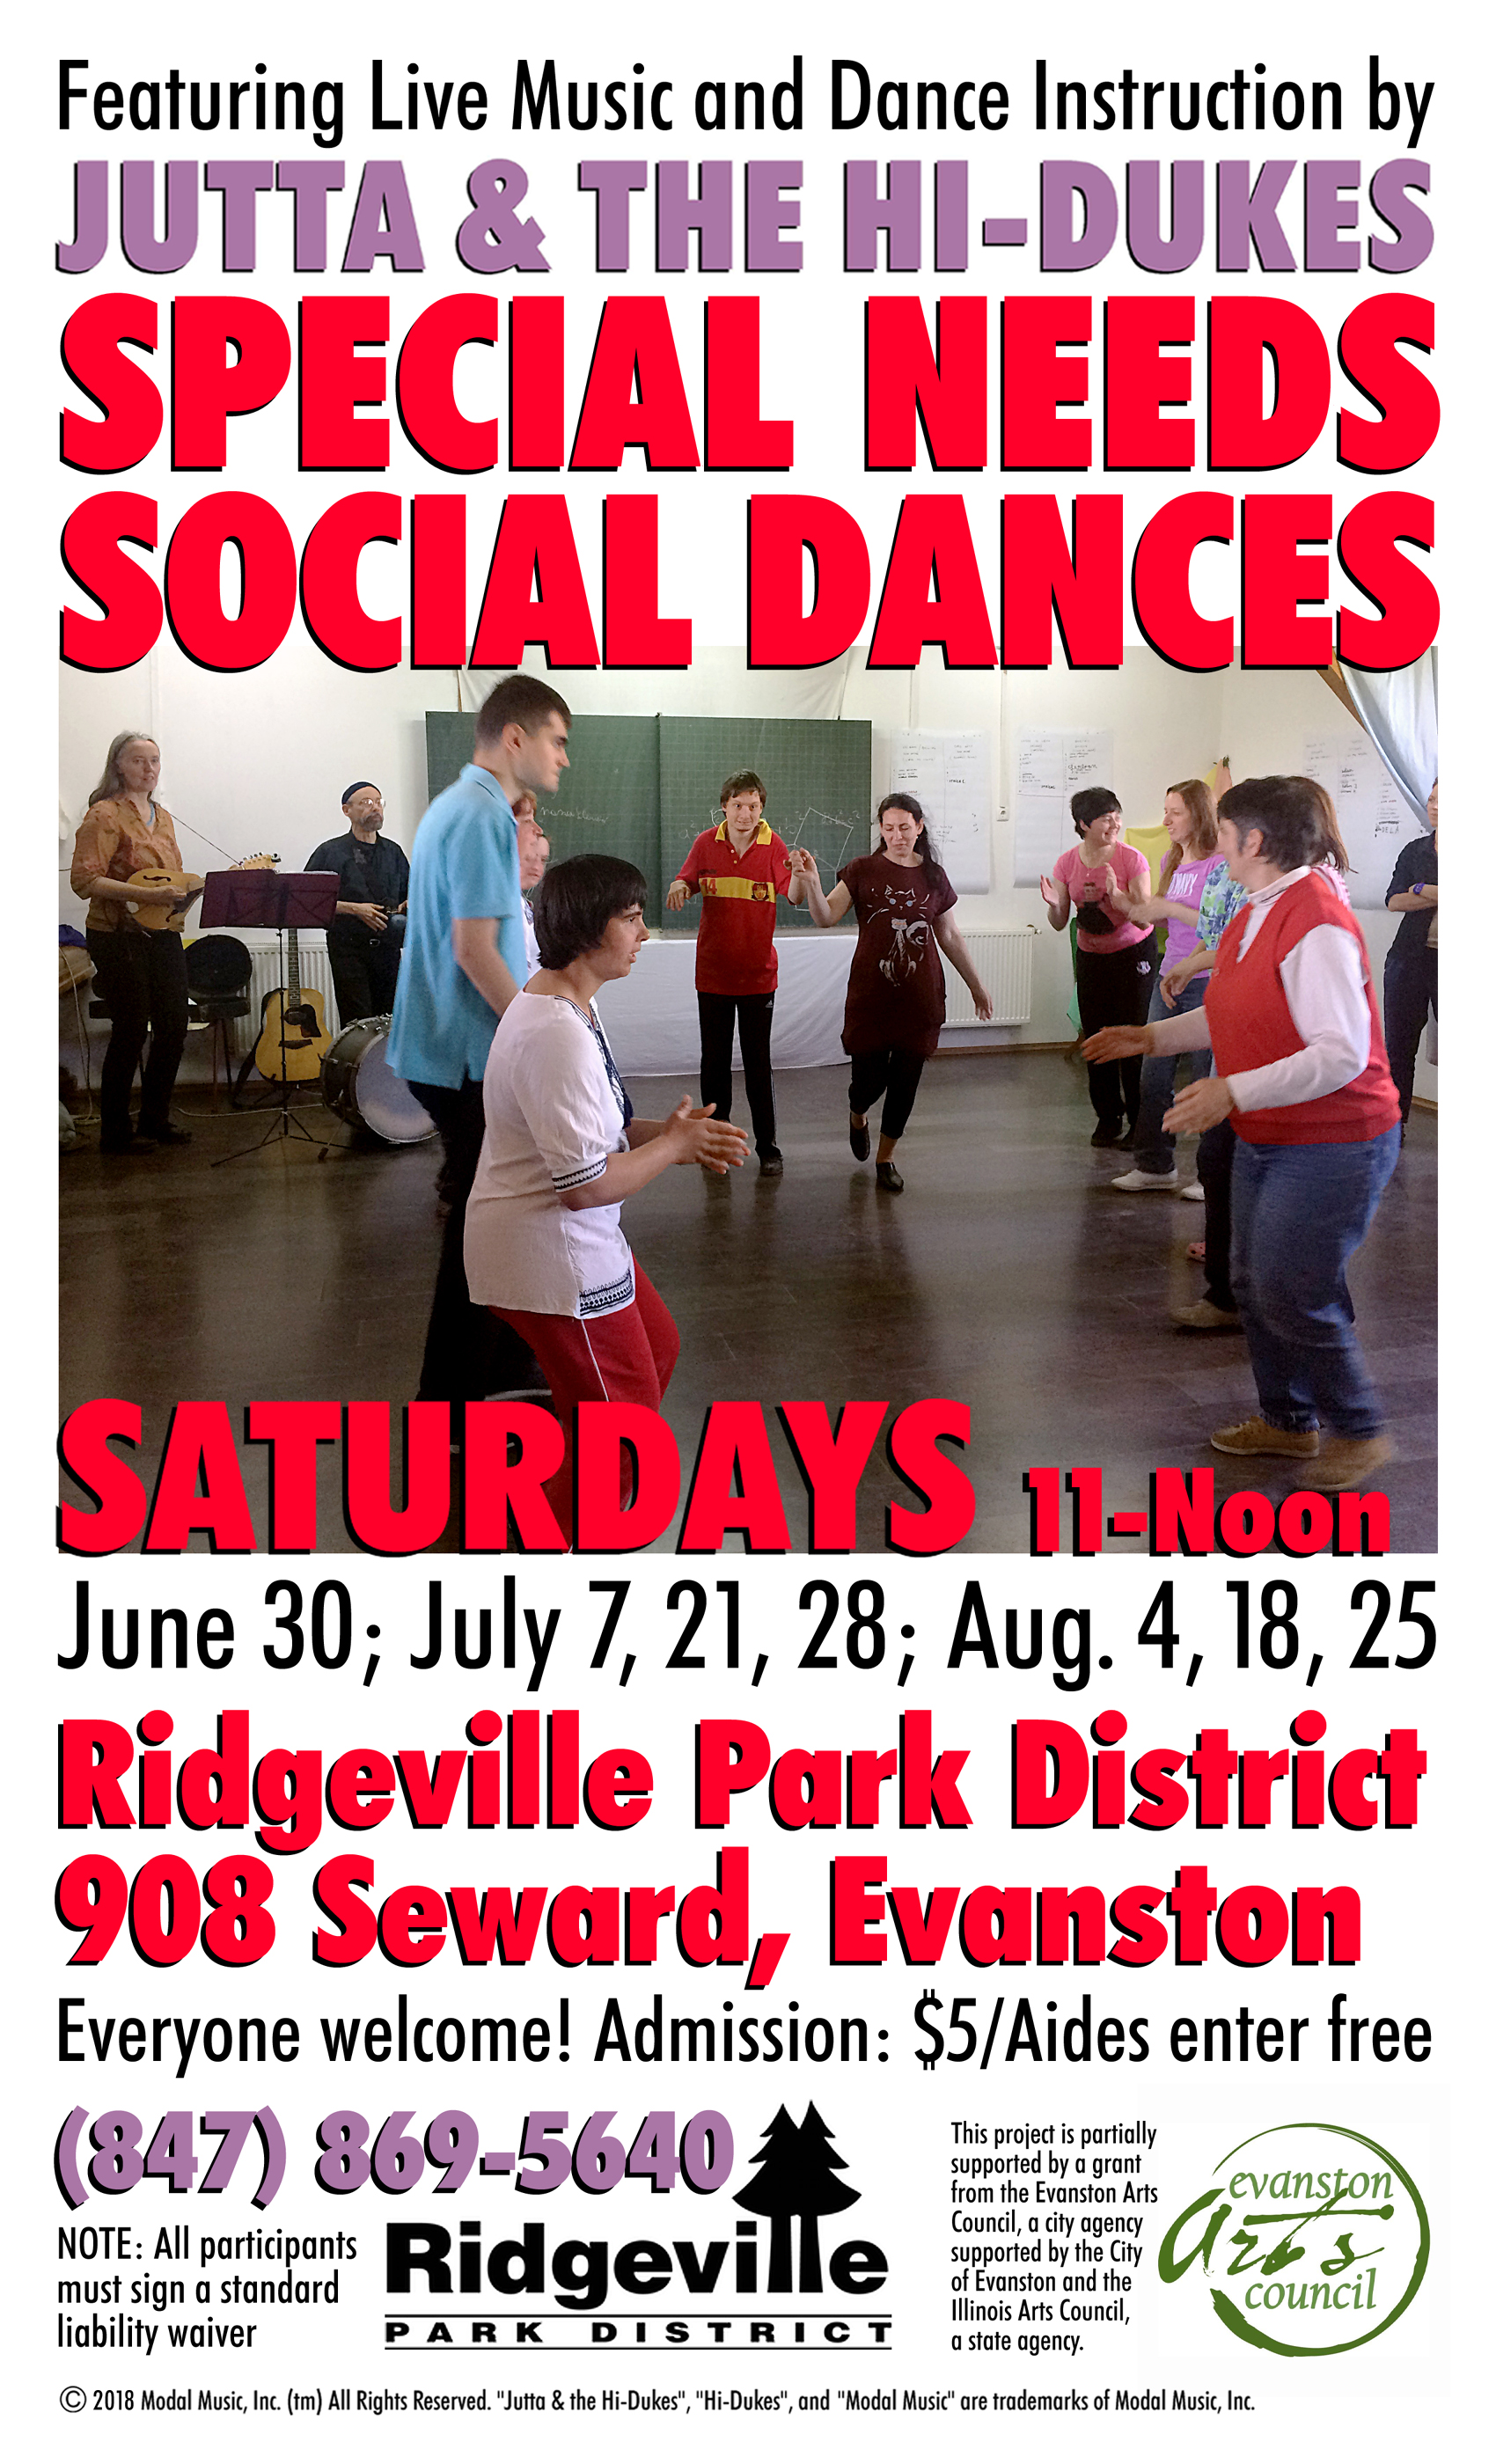 Image of the Jutta & the Hi-Dukes poster for special needs social dance program PDF file. Click to download the printable PDF file for the Jutta & the Hi-Dukes poster for special needs social dance program. Copyright 2018, Modal Music, Inc. (tm). All rights reserved.